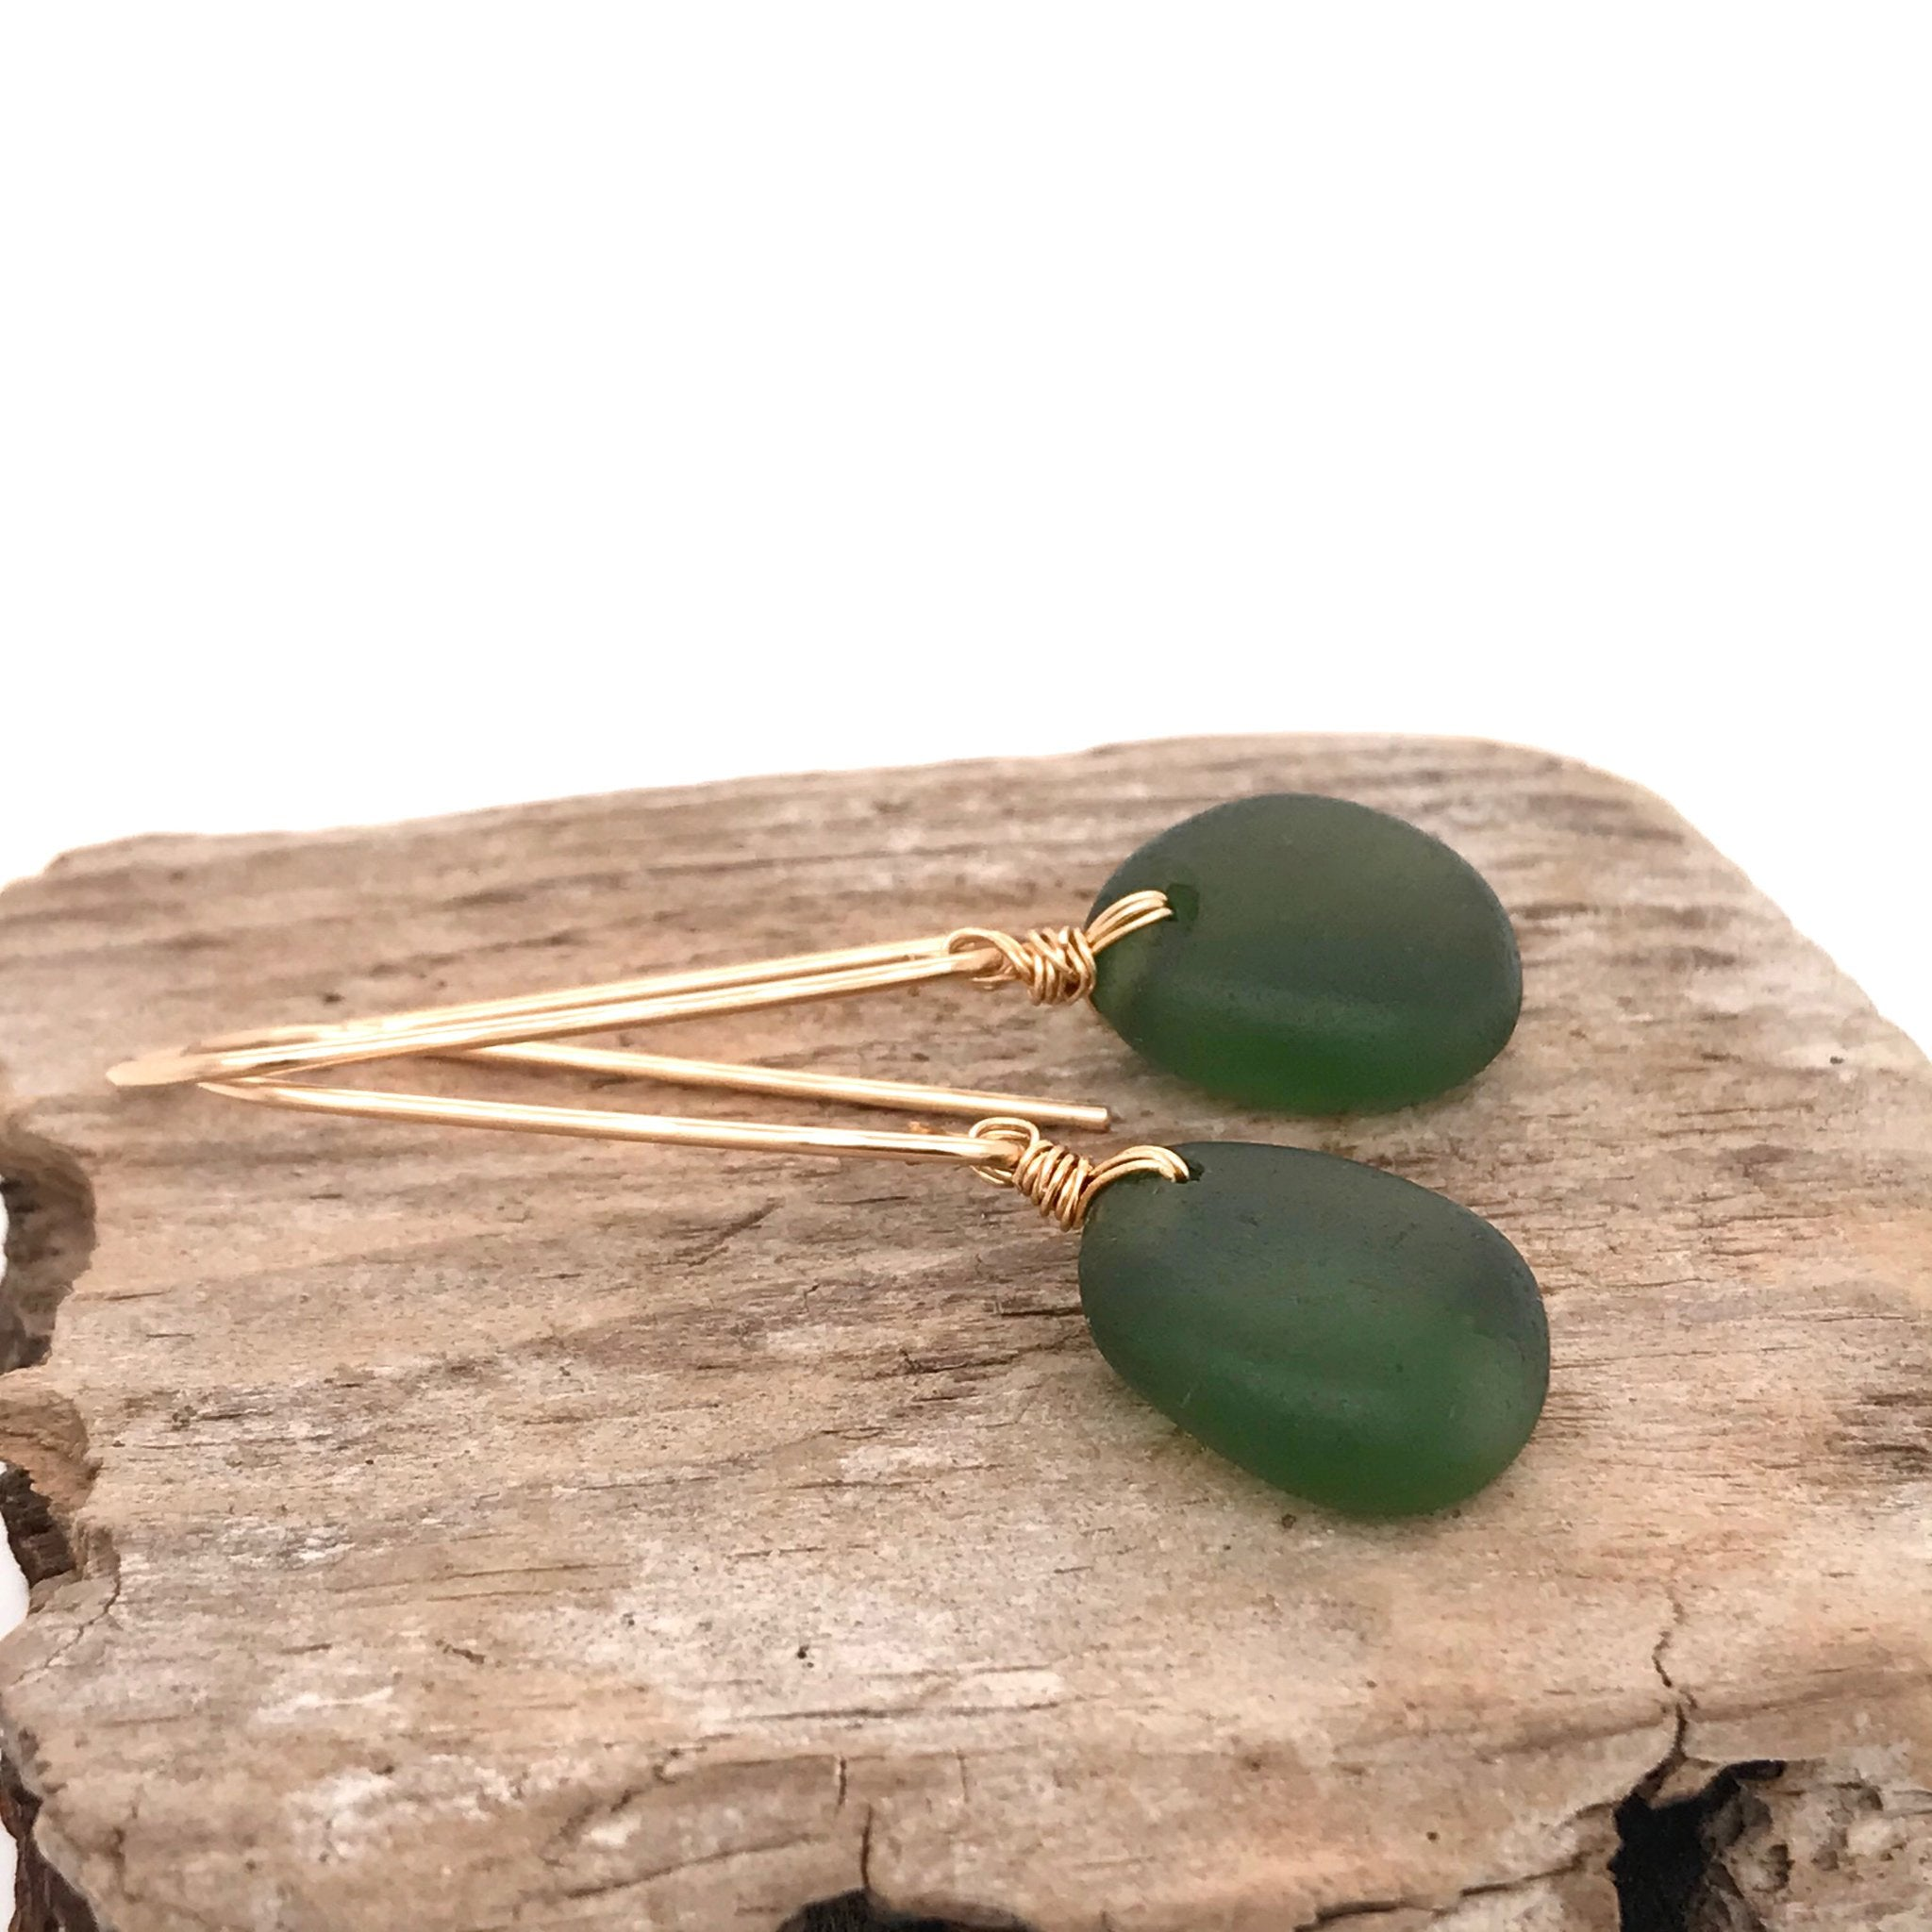 long gold earrings with green seaglass kriket broadhurst jewellery